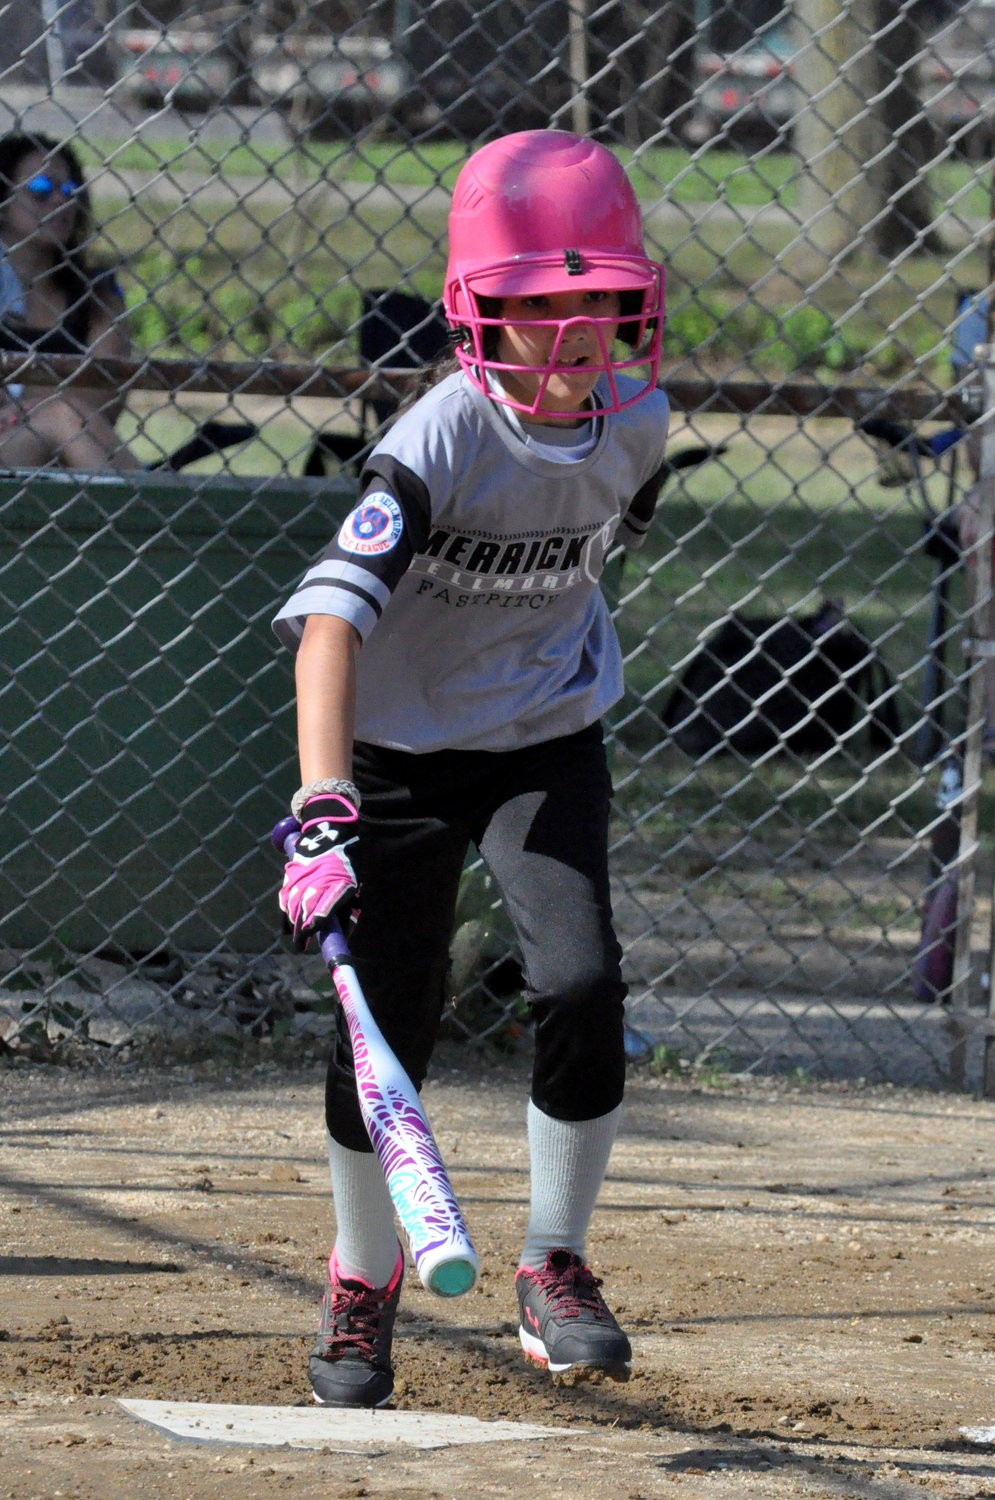 Samantha Kraemer headed towards first base after making contact in last Saturday's softball game at Merrick Road Park.